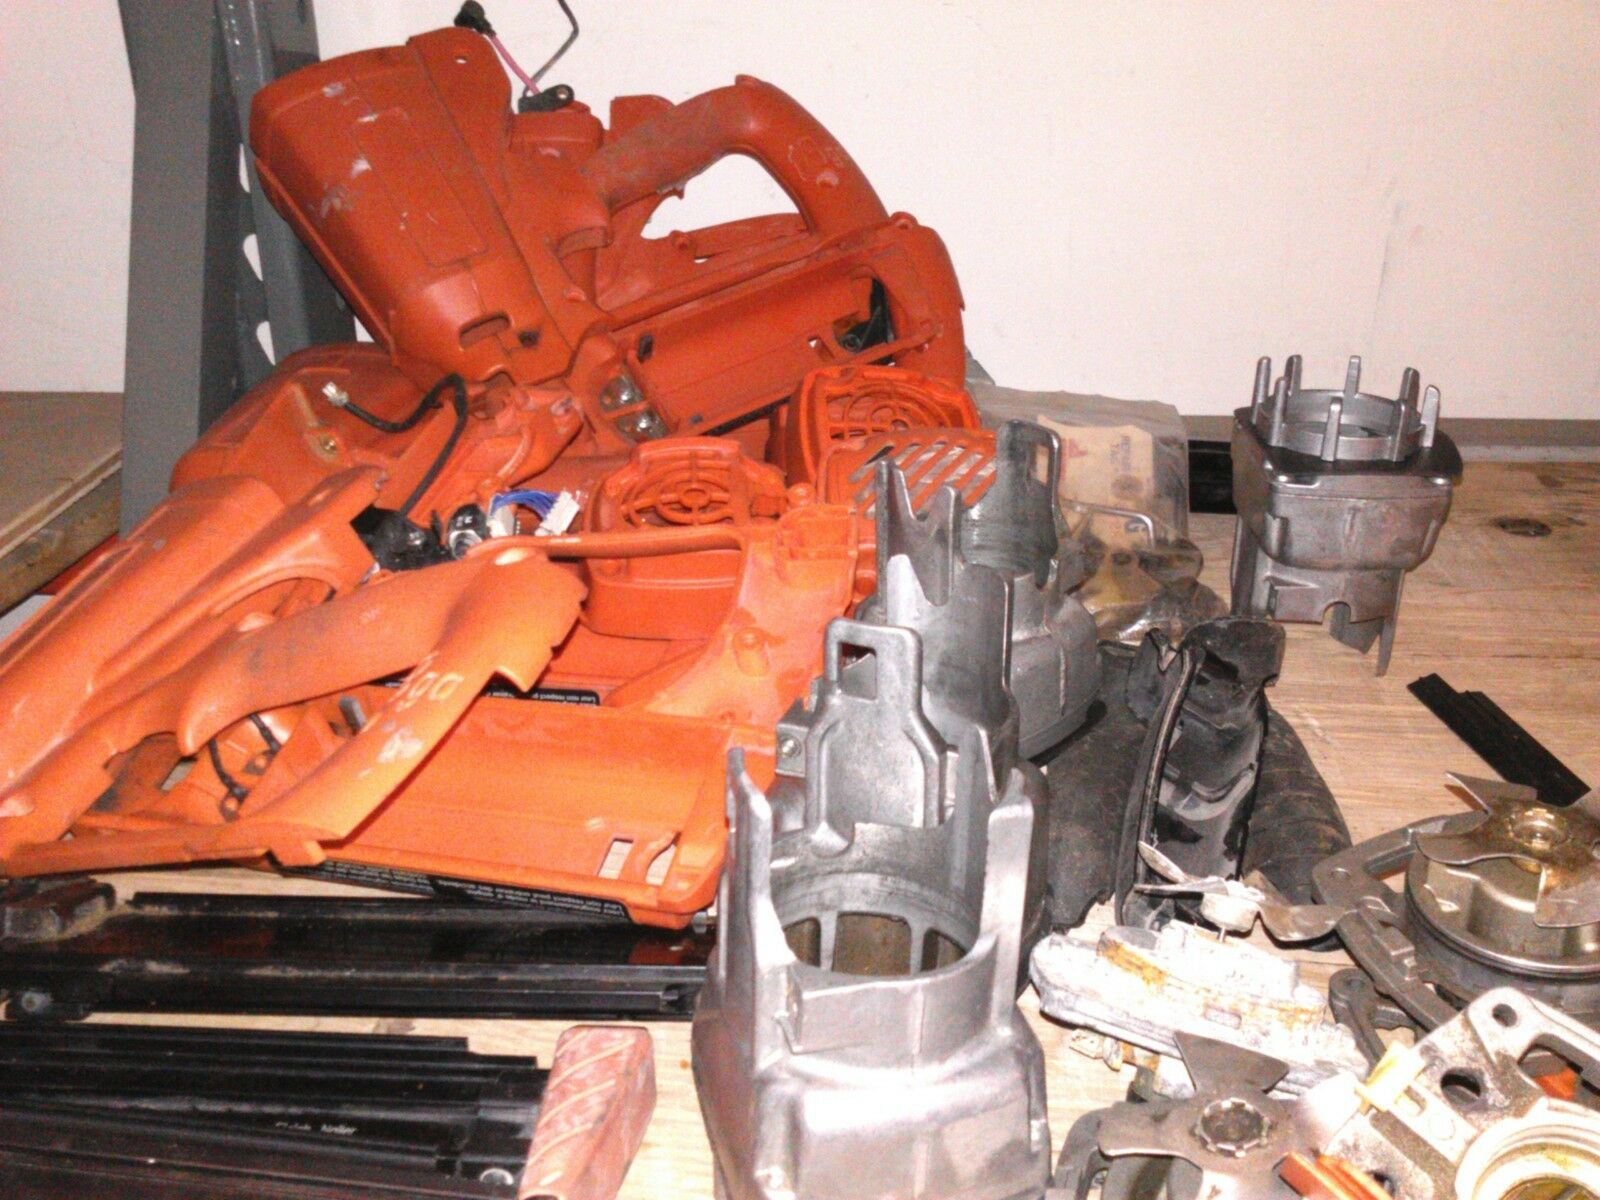 901084 MAG WEAR ASY USED FOR 901000 IM200 F18 NAILER-ENTIRE PICTURE NOT FOR SALE